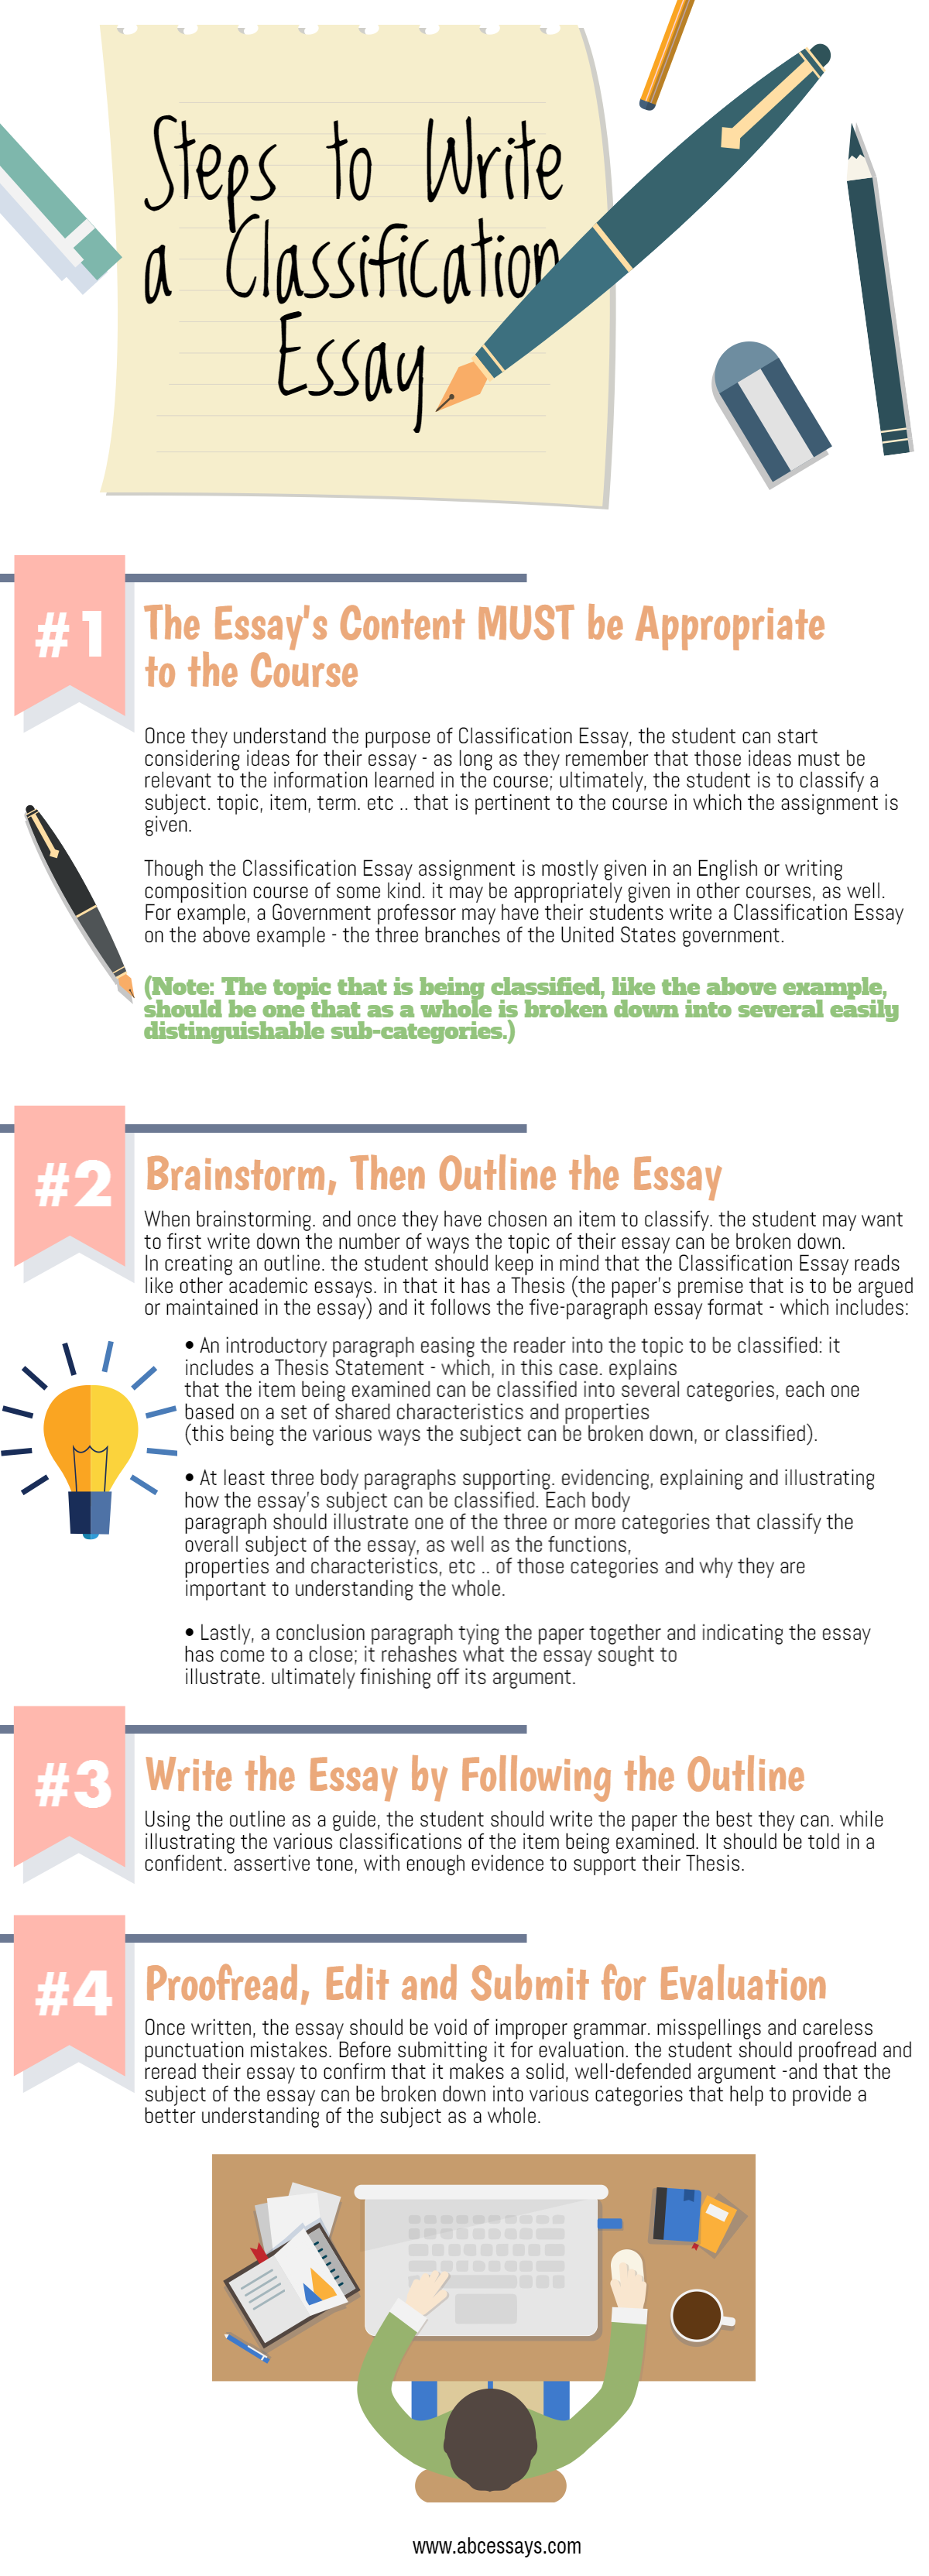 edit essay satire essays like a modest proposal meilleures images  how to write classification essay division essay examples division essay example classification and division essay classification